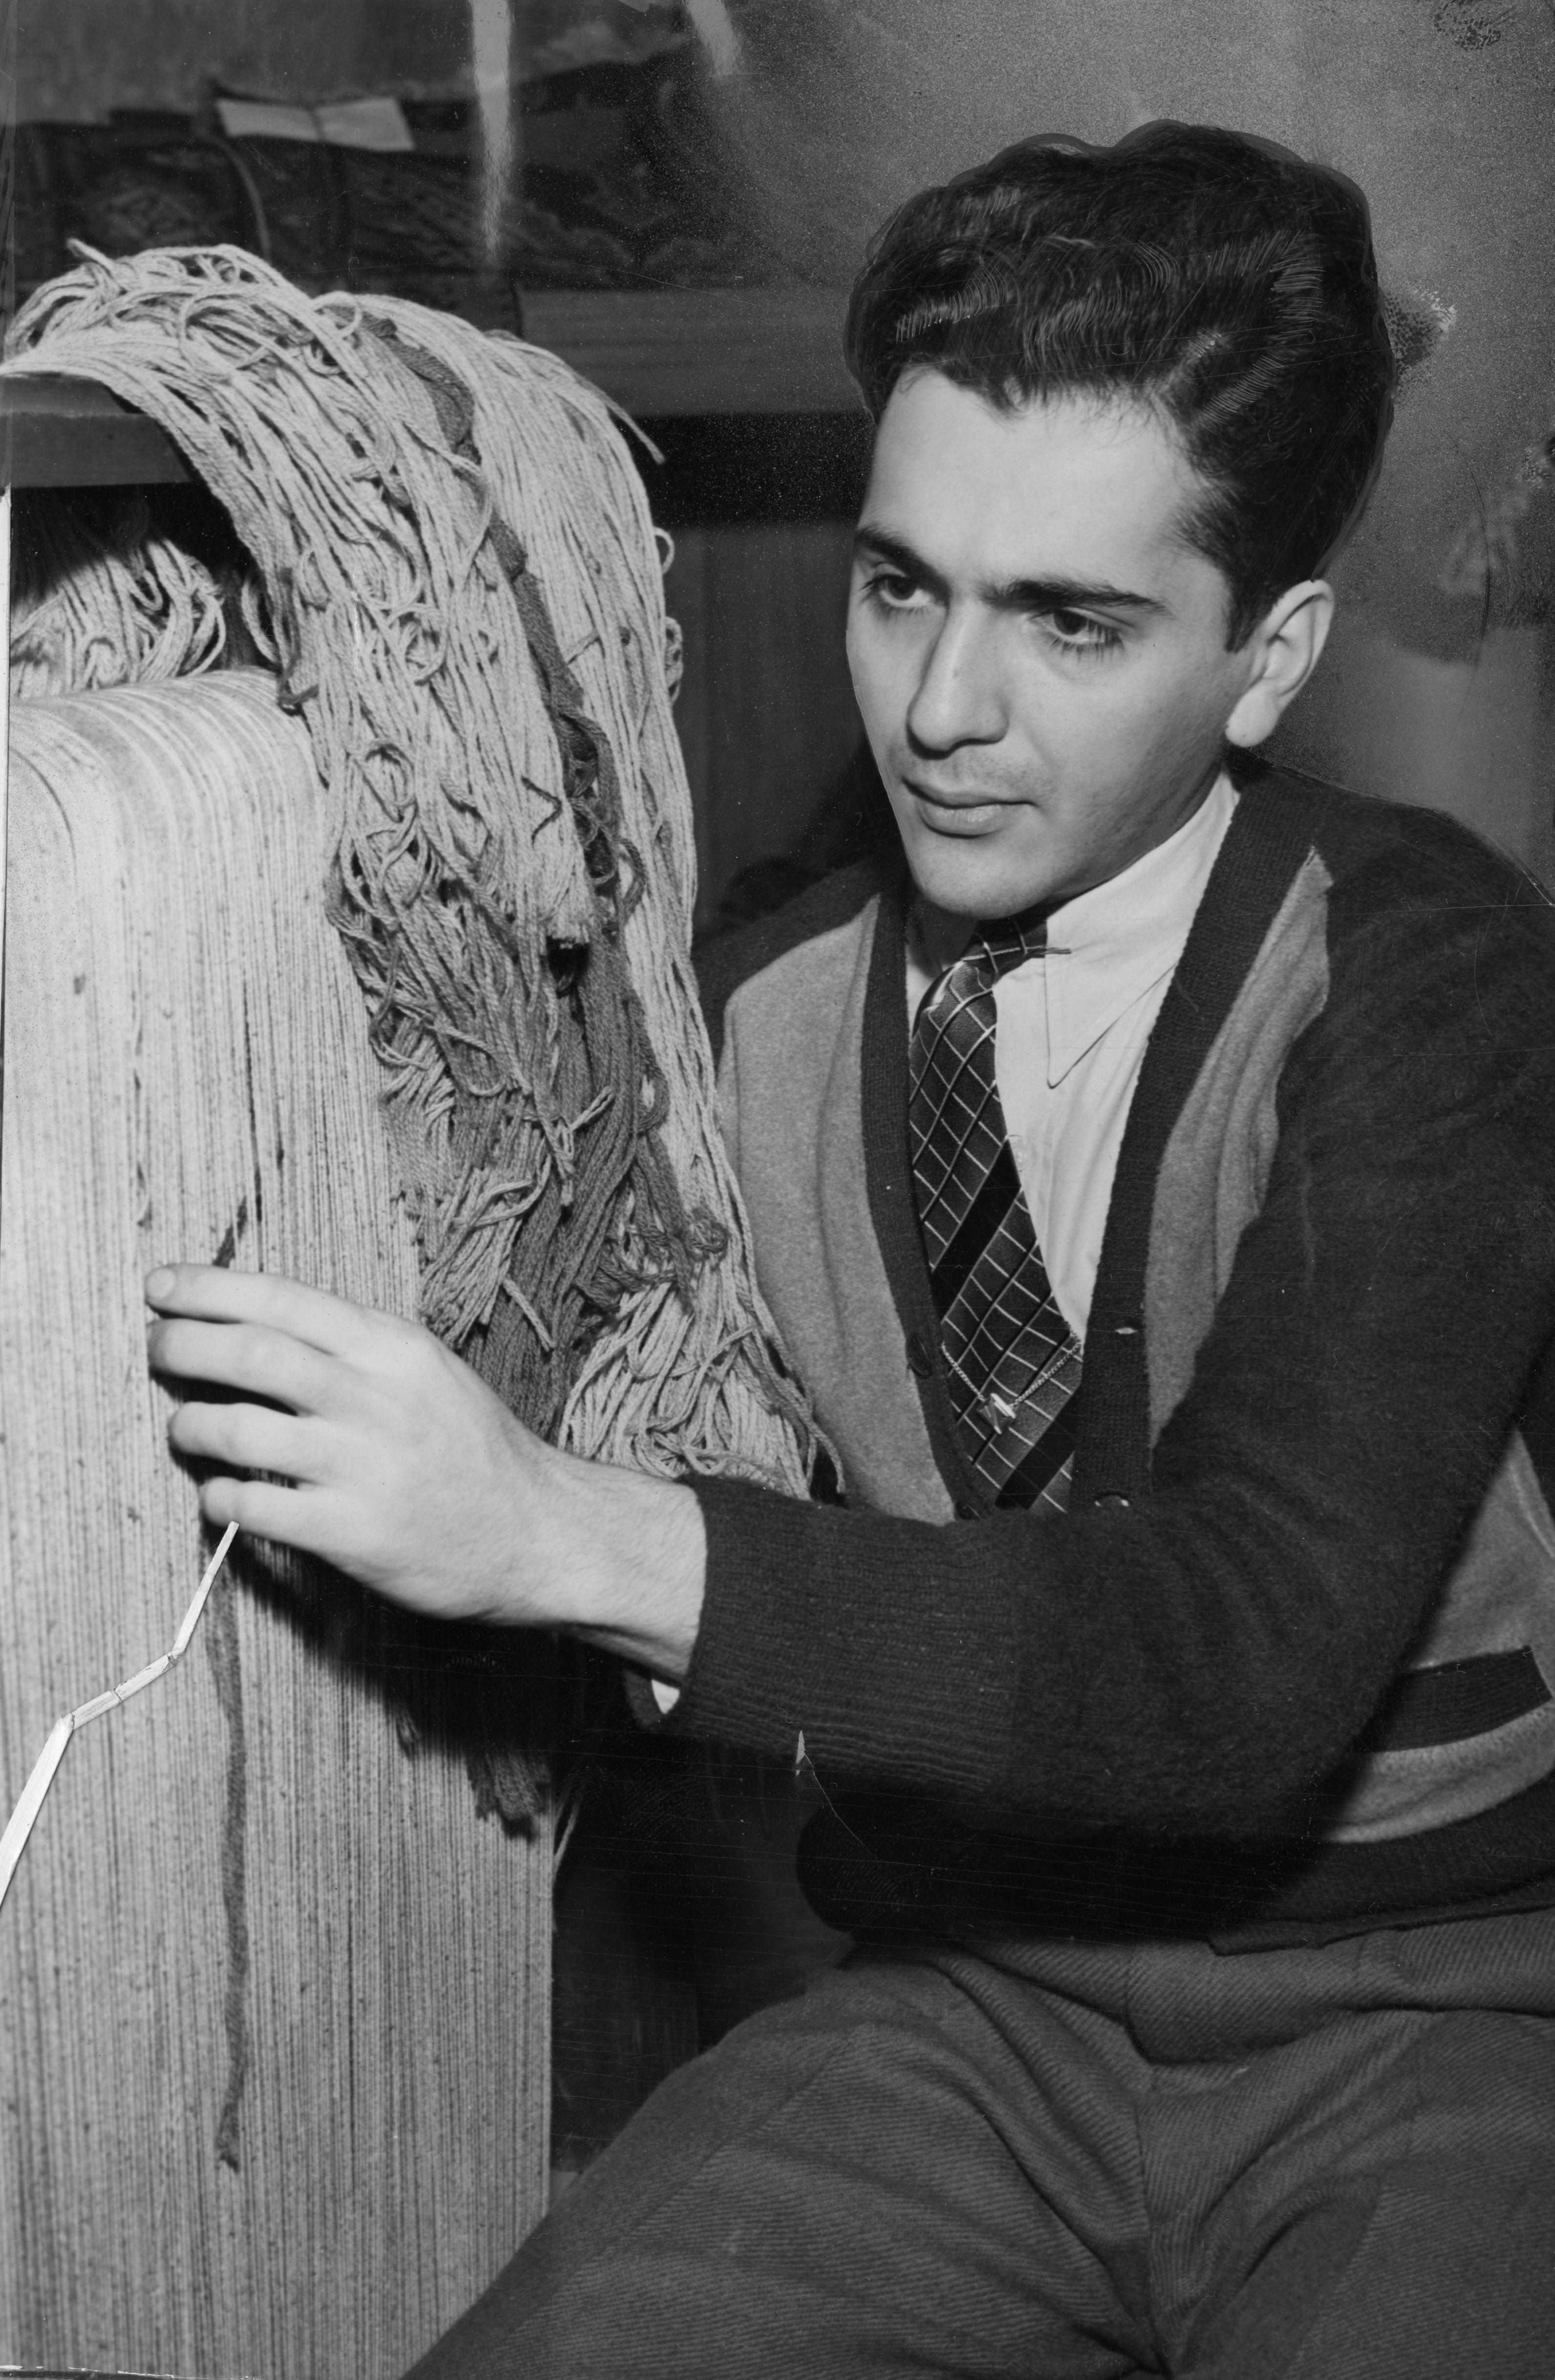 This photograph from 30 December 1940 shows Vahe Gulbenkian repairing such a rug on a loom at 12551 Euclid Ave.